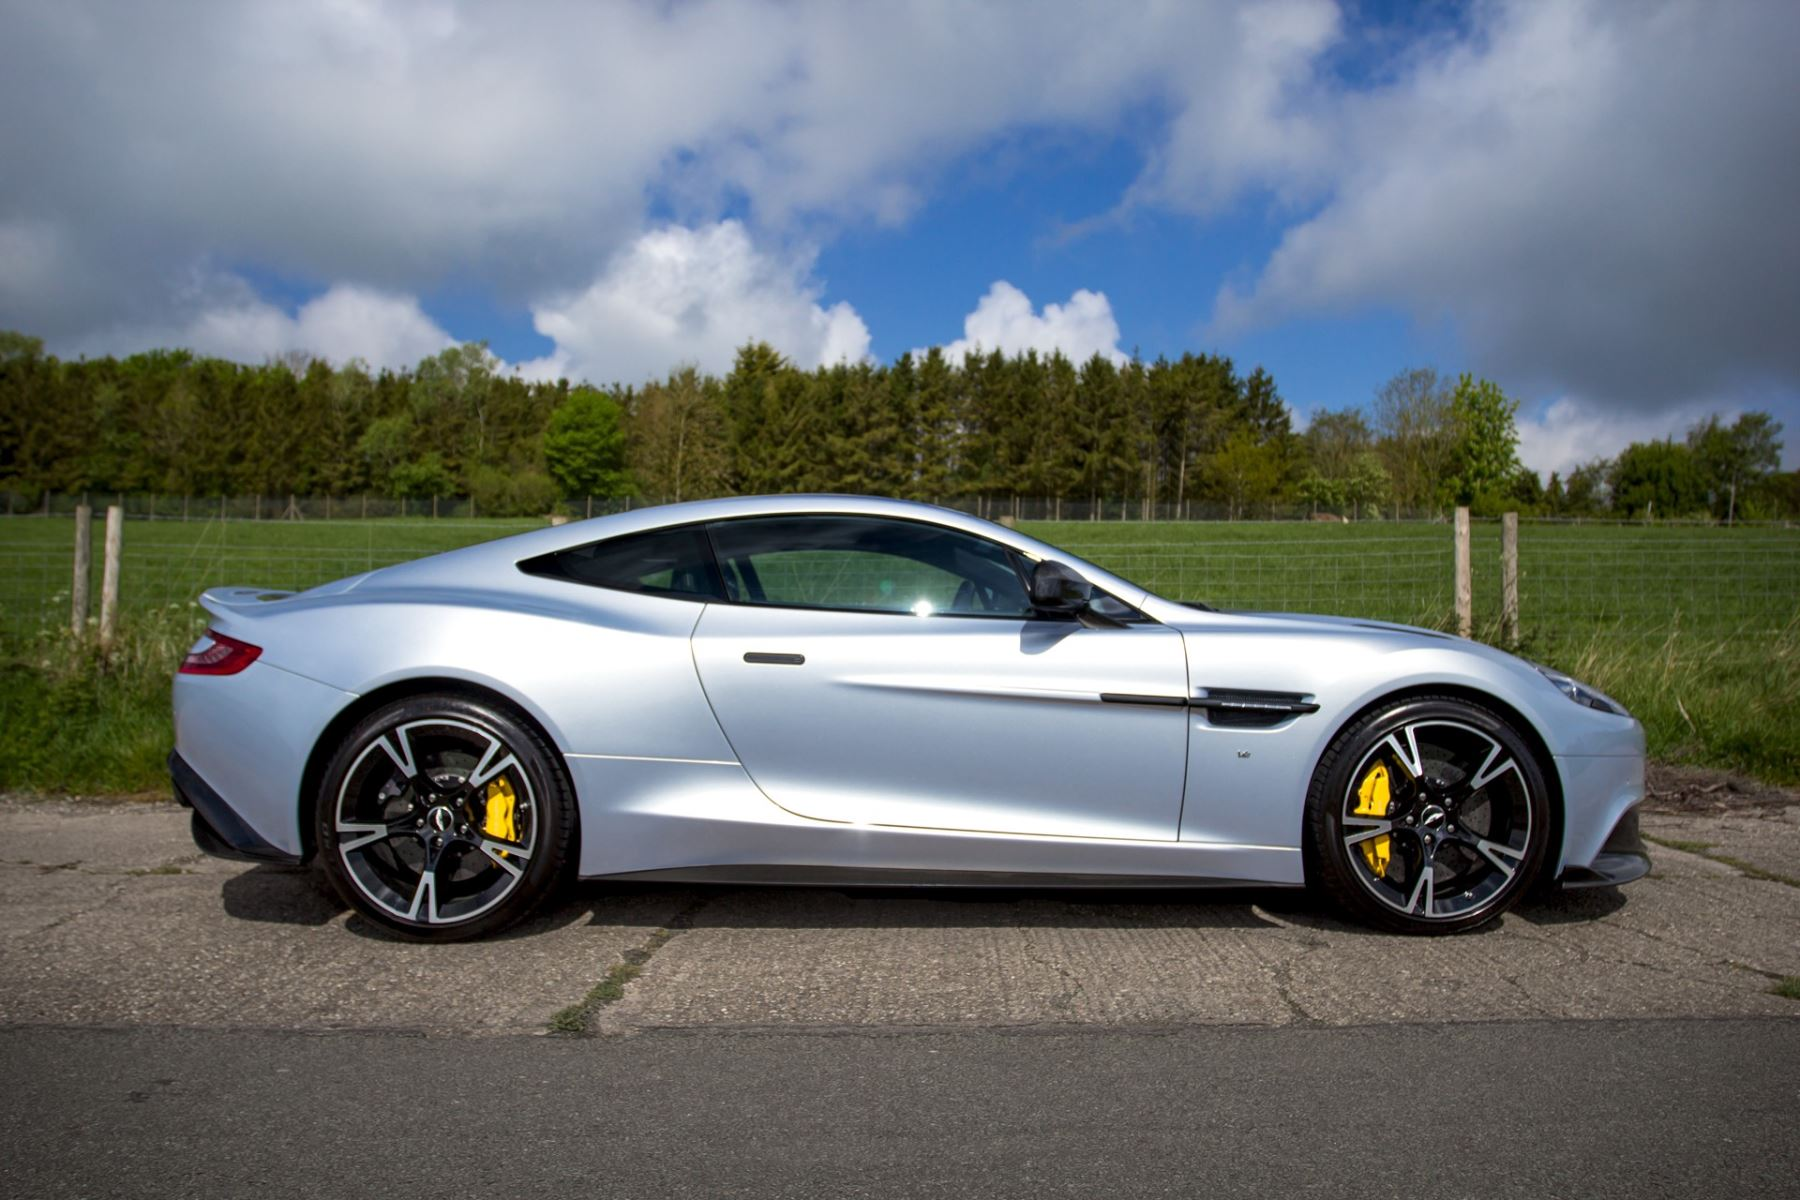 Aston Martin Vanquish V12 [595] S 2+2 2dr Touchtronic image 10